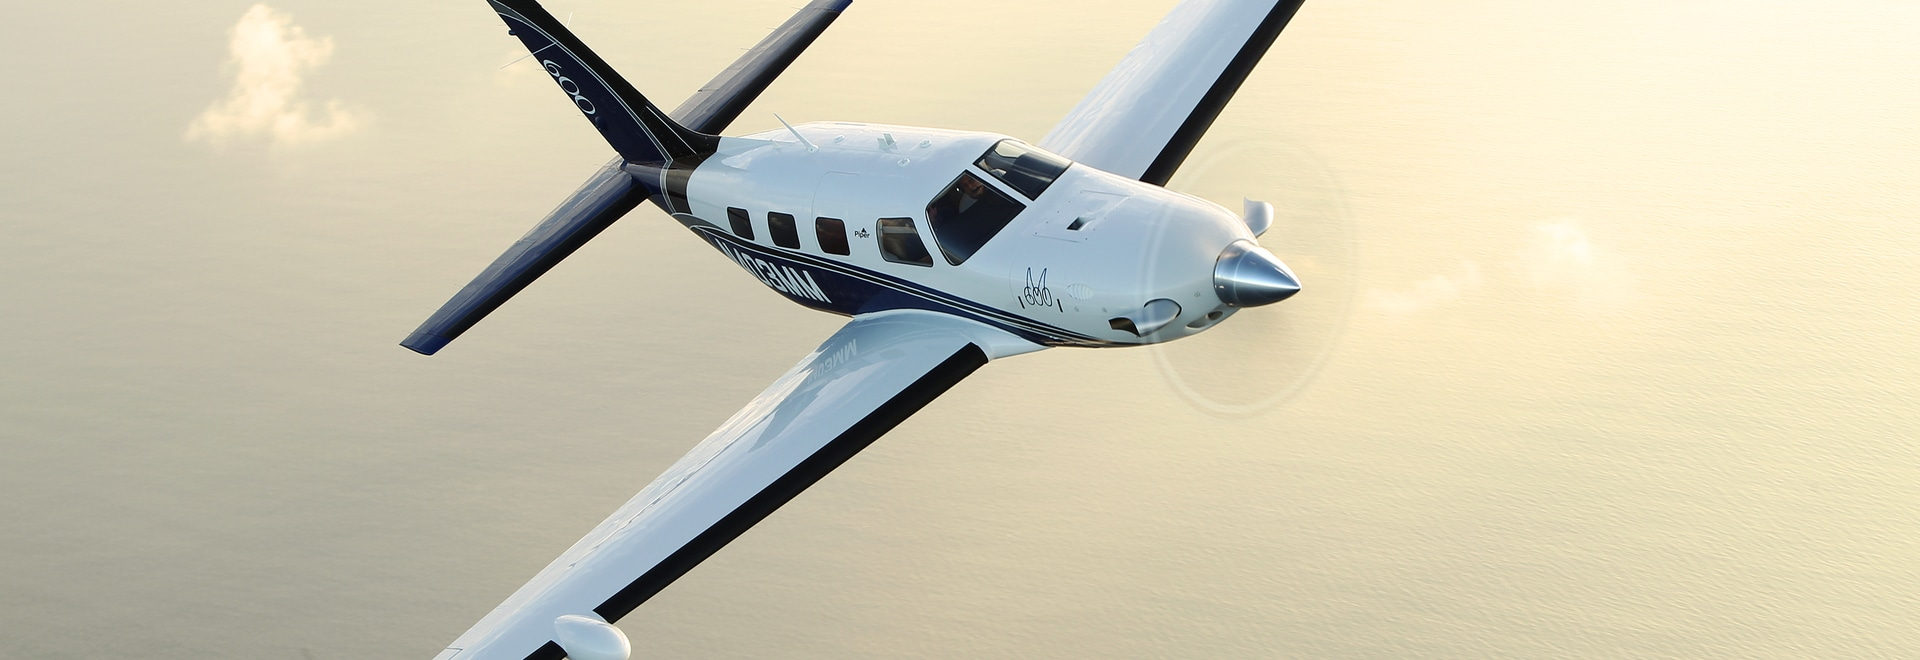 In the past three years, fleet utilization of Piper's M600 has been greater than expected.